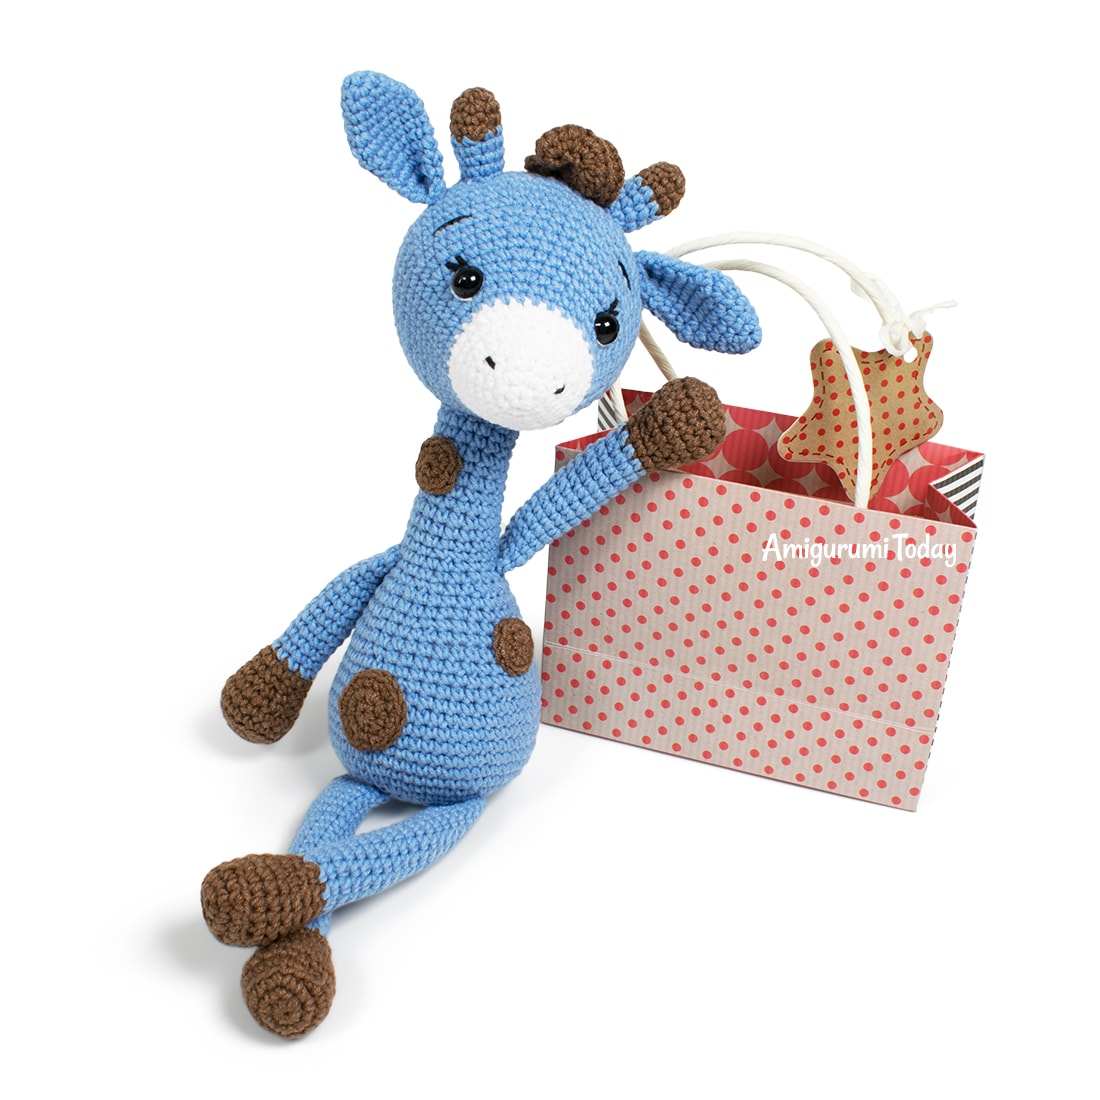 Free crochet Blue Giraffe amigurumi pattern designed by Amigurumi Today